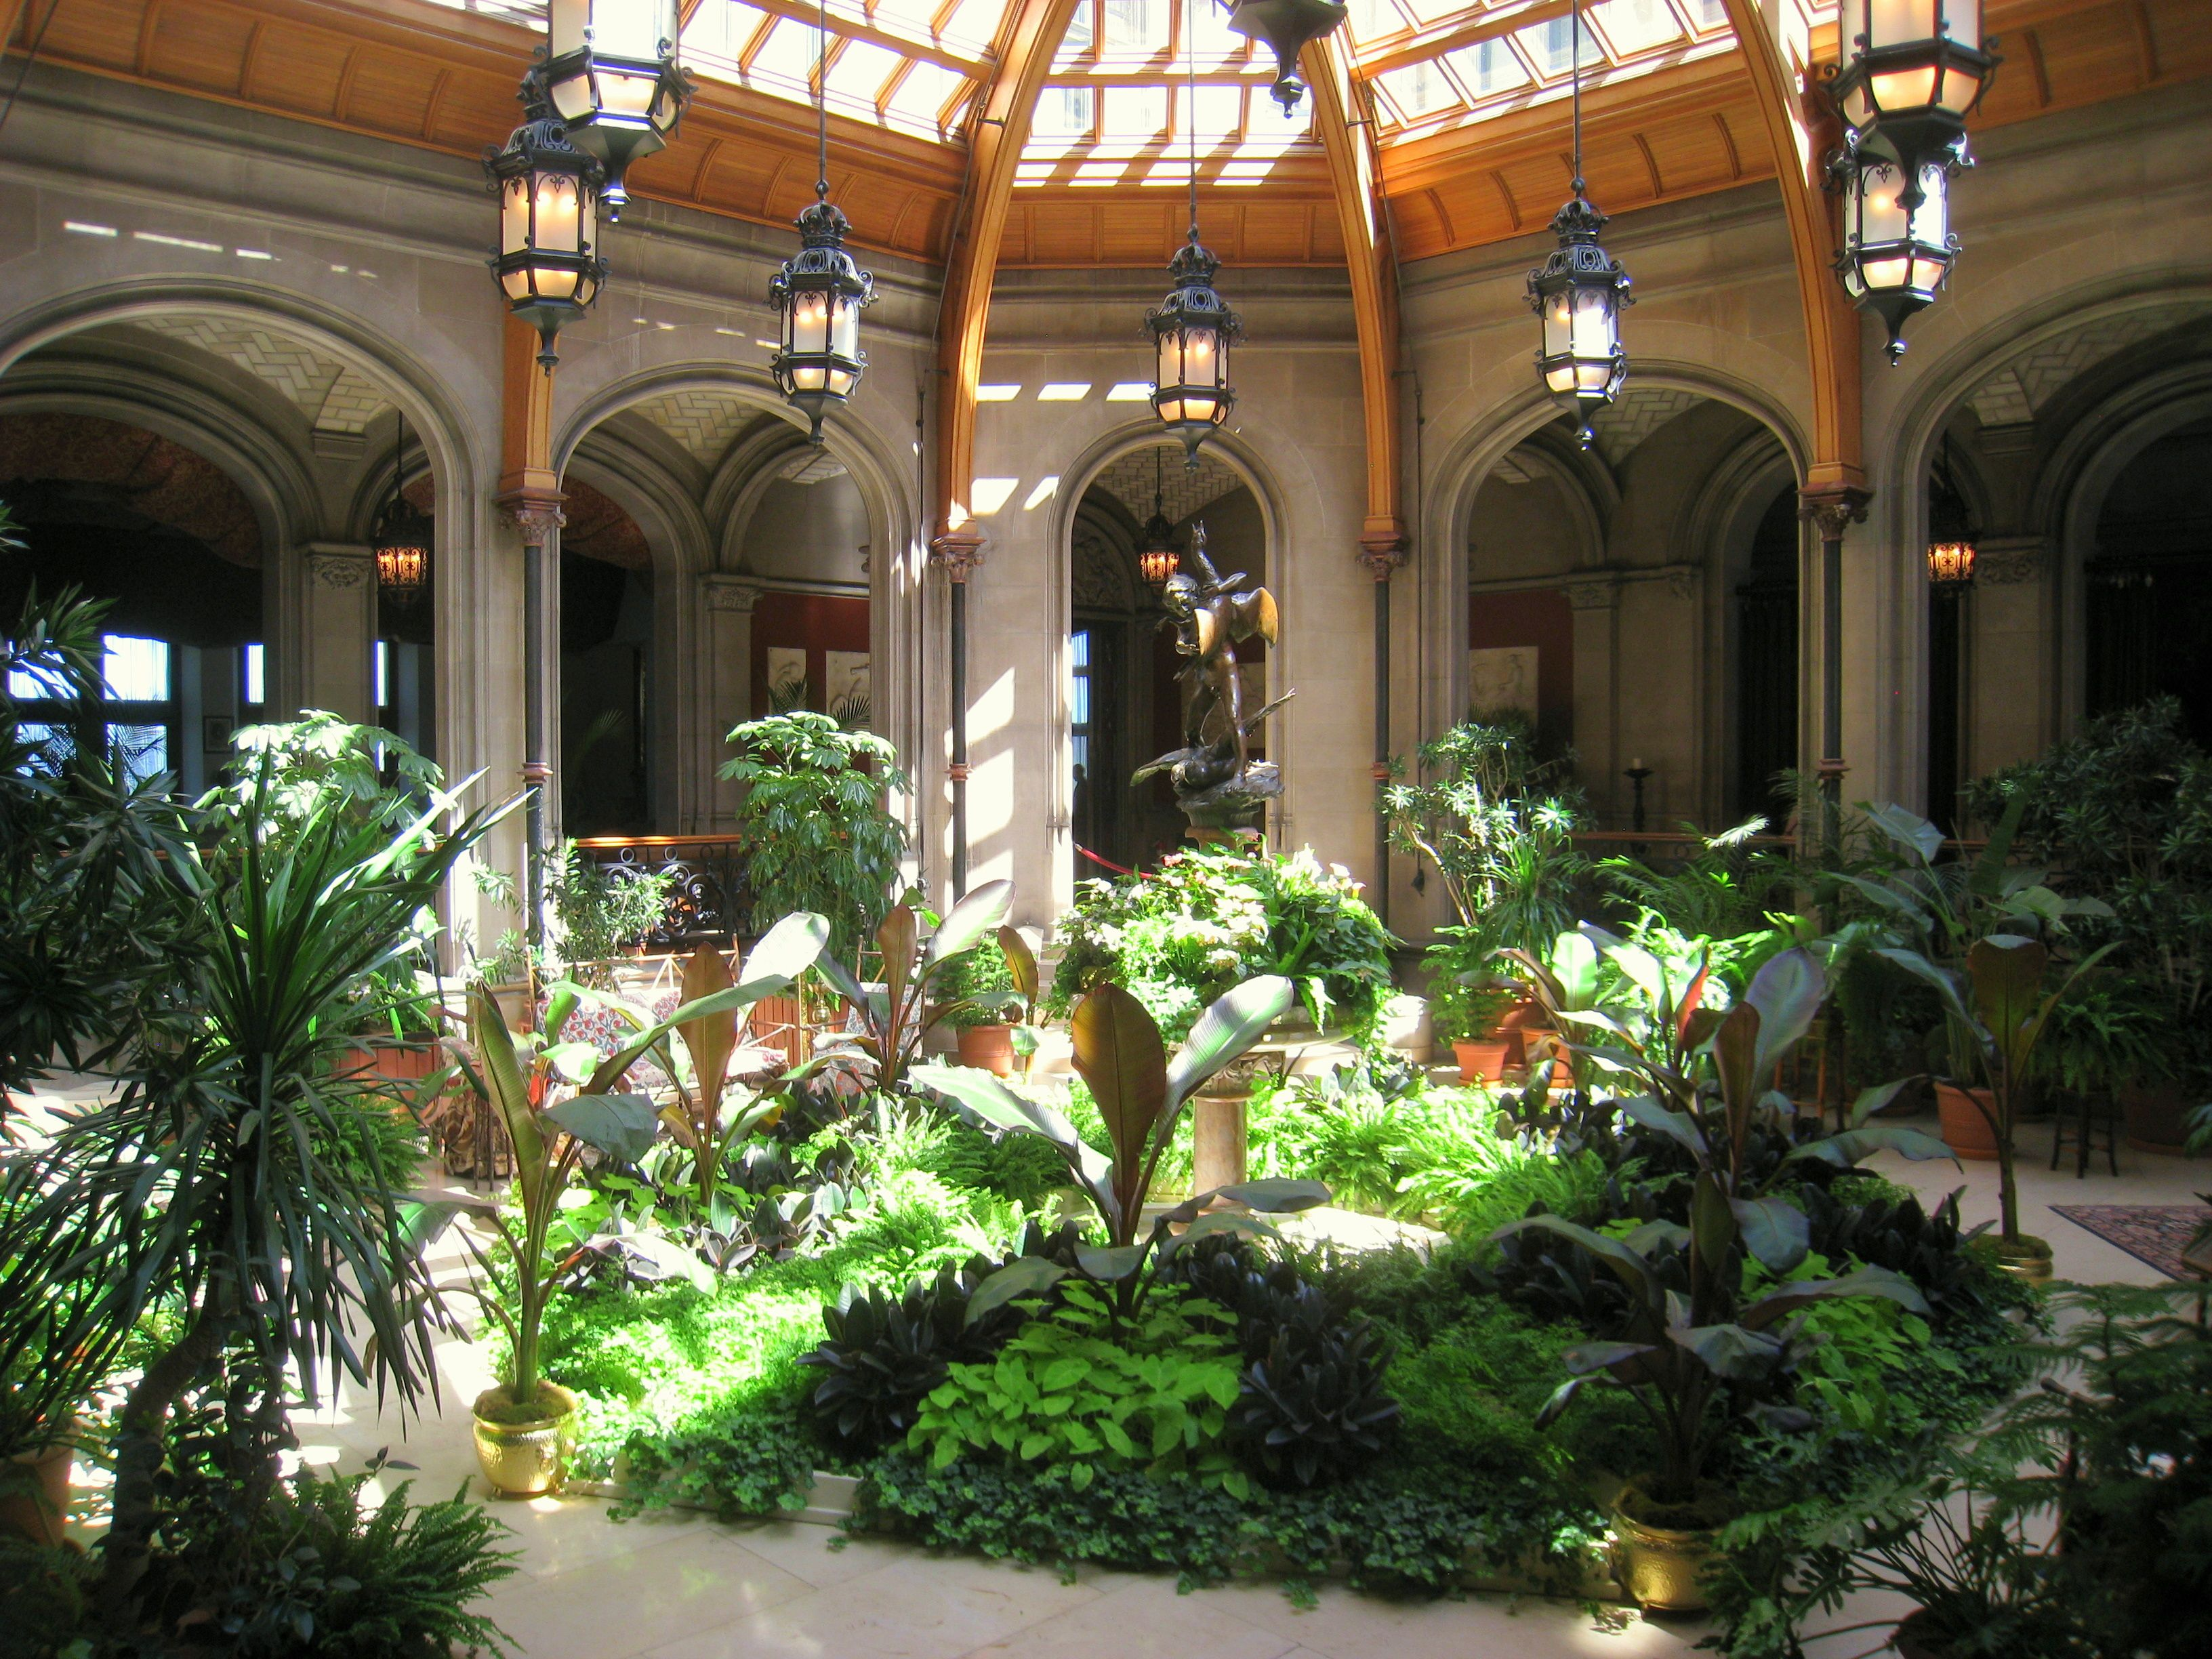 119 best home - atriums images on pinterest | interior garden